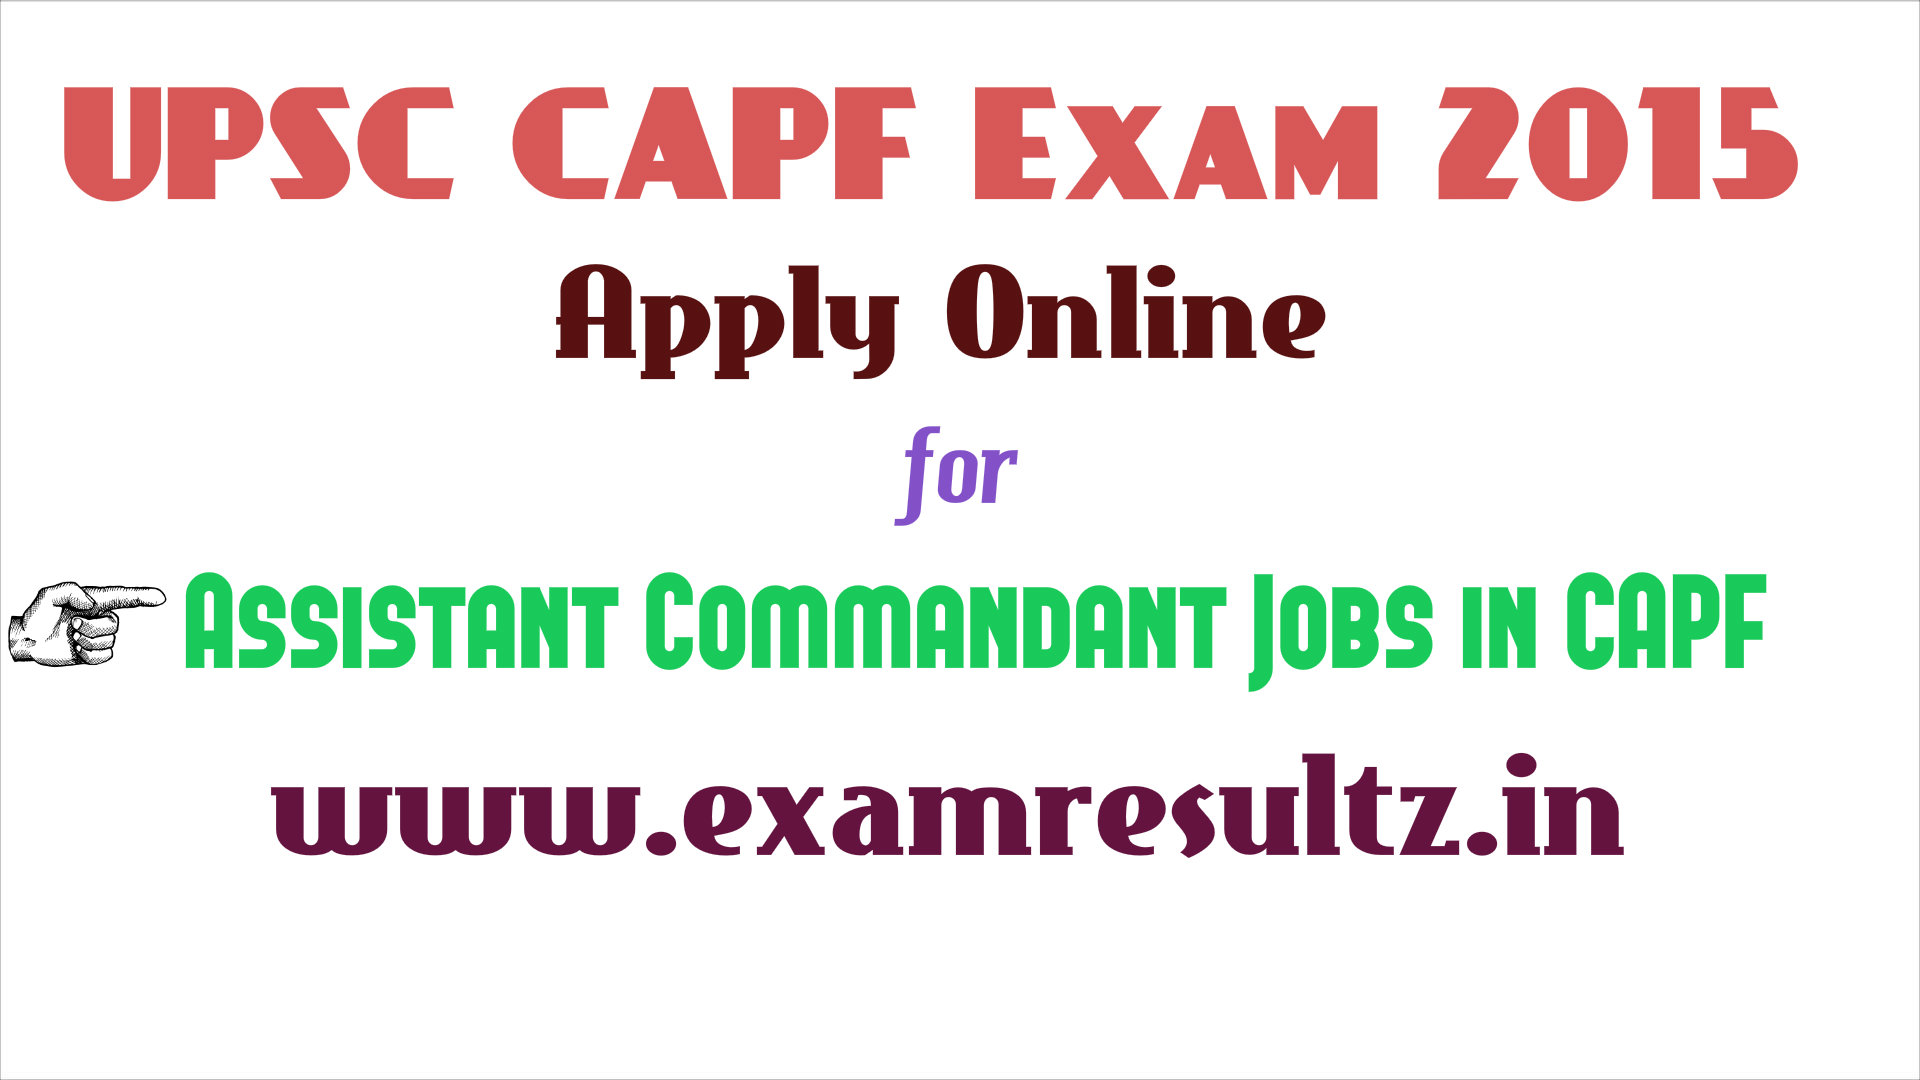 upsc capf examination 2015 exam dates